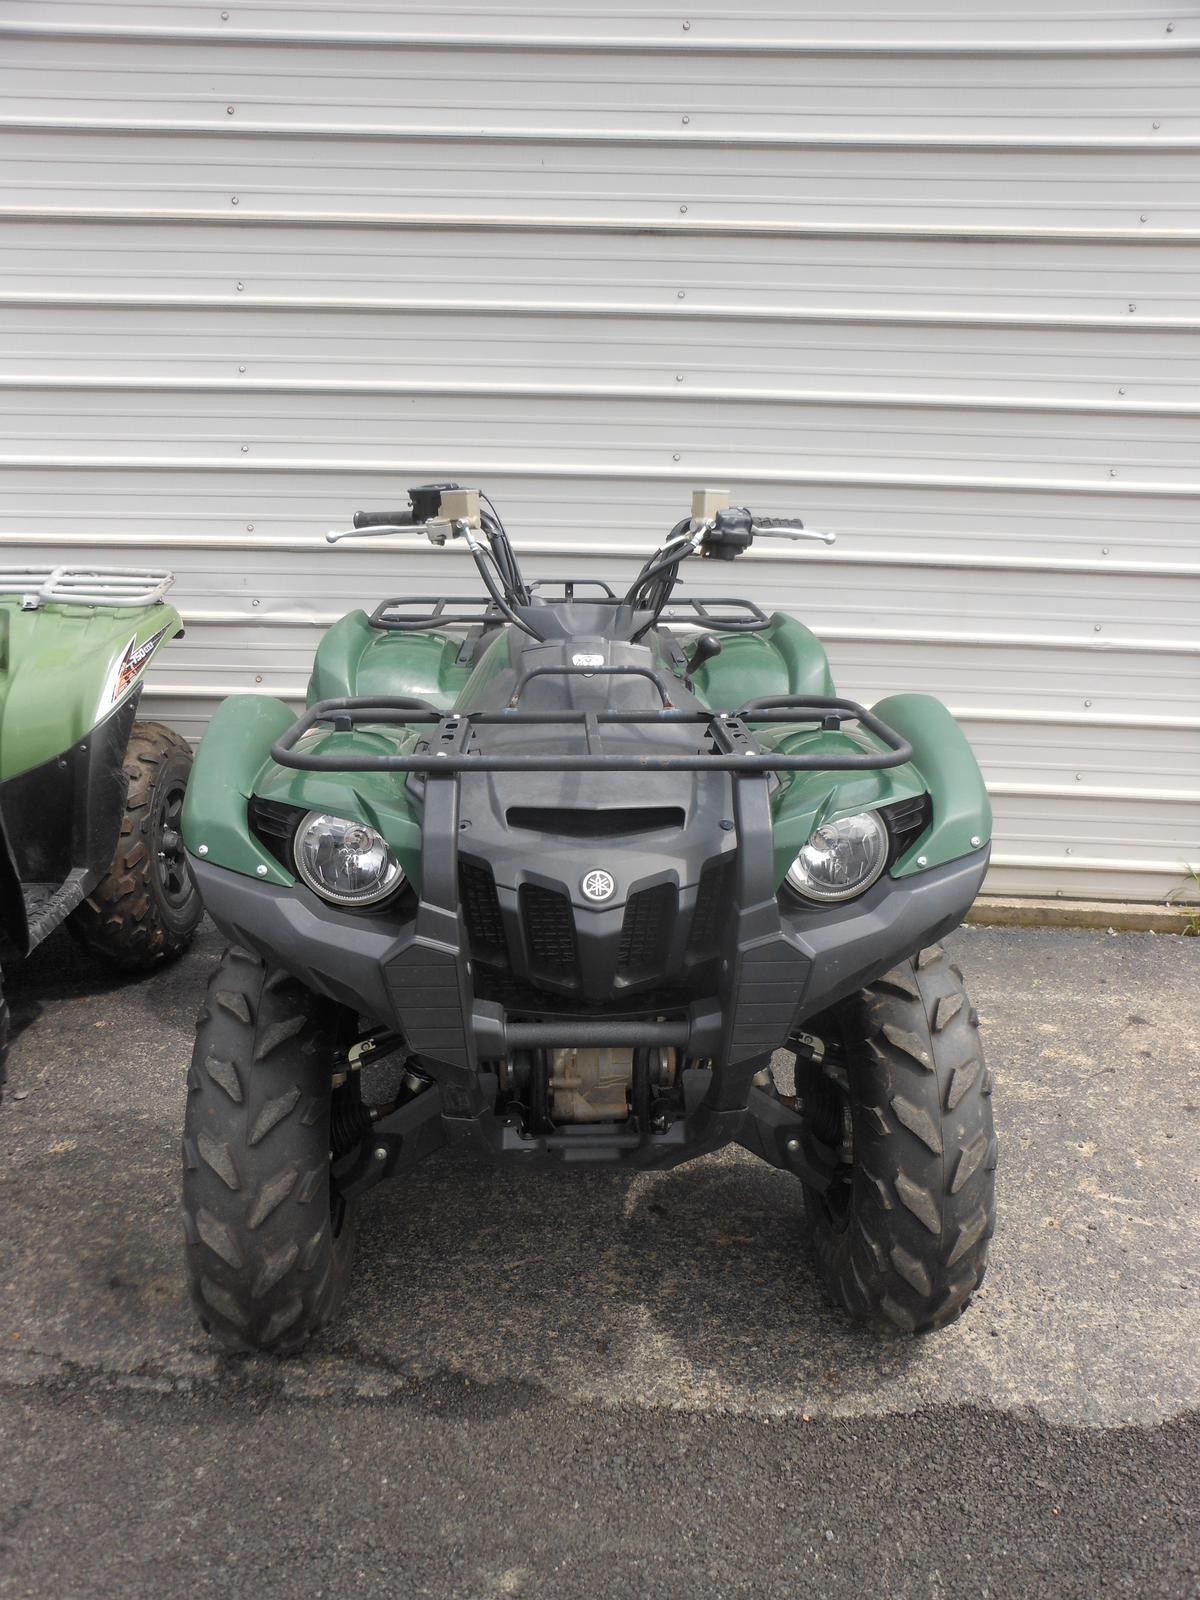 2013 Yamaha Grizzly 700 FI Auto  4x4 for sale in Bridgeport, WV